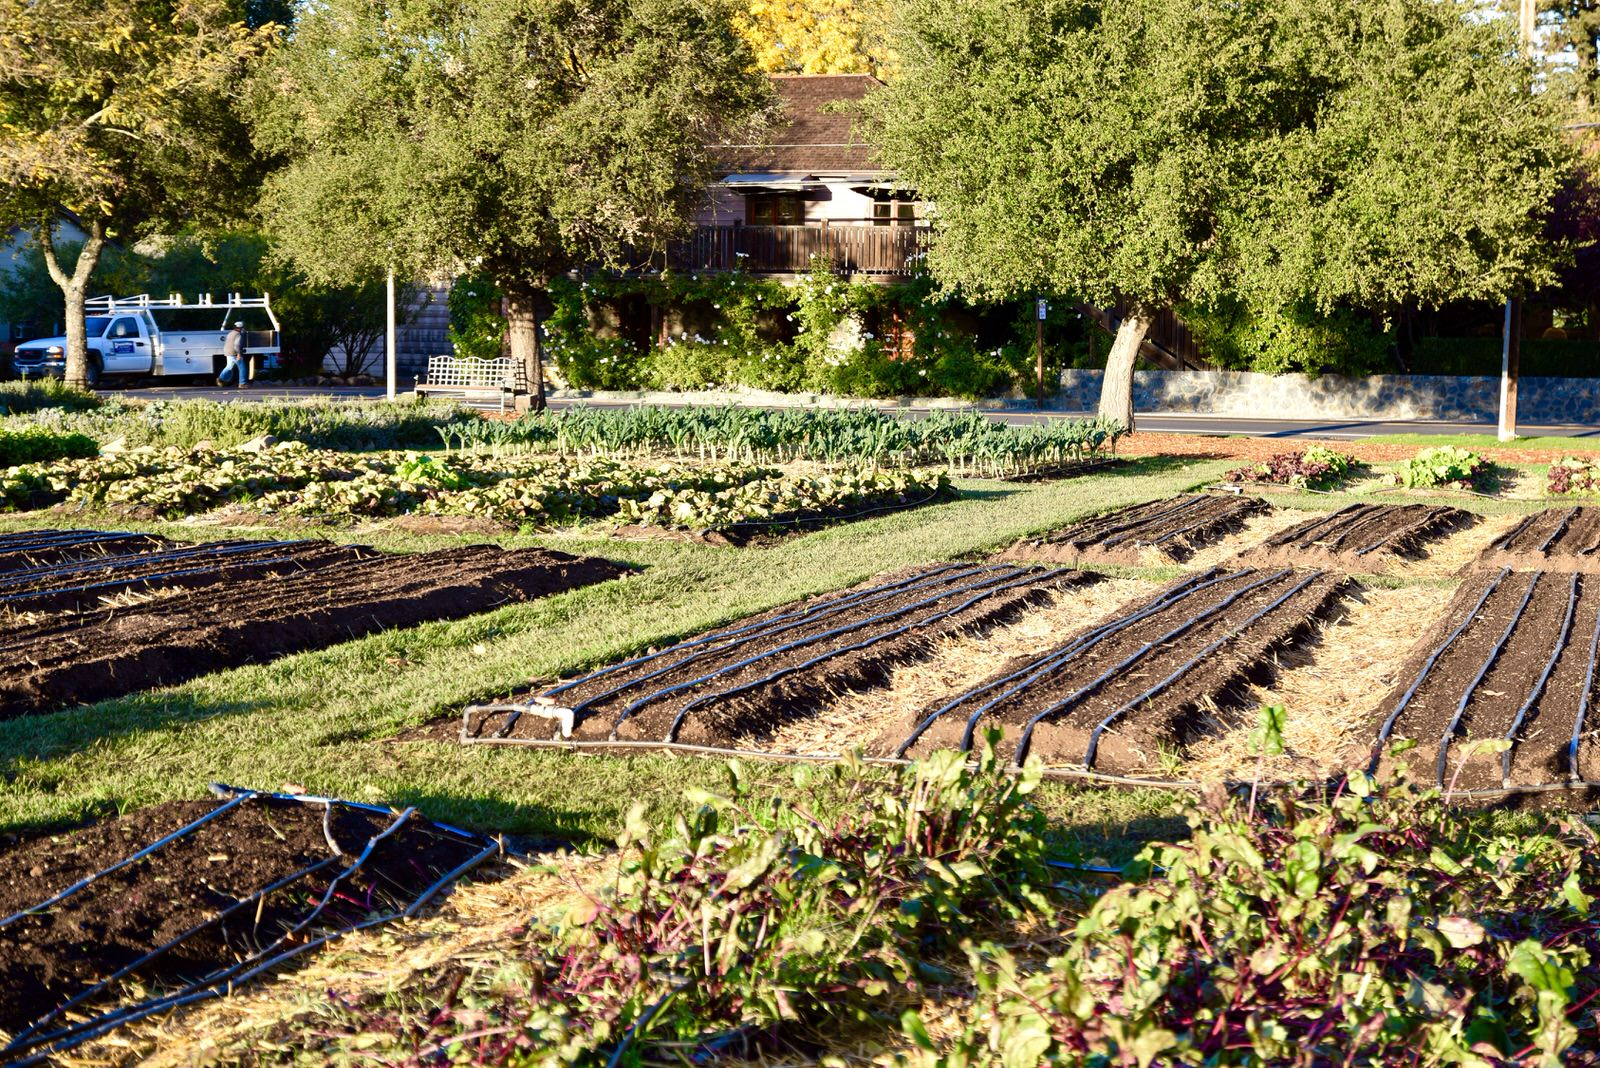 French Laundry gardens